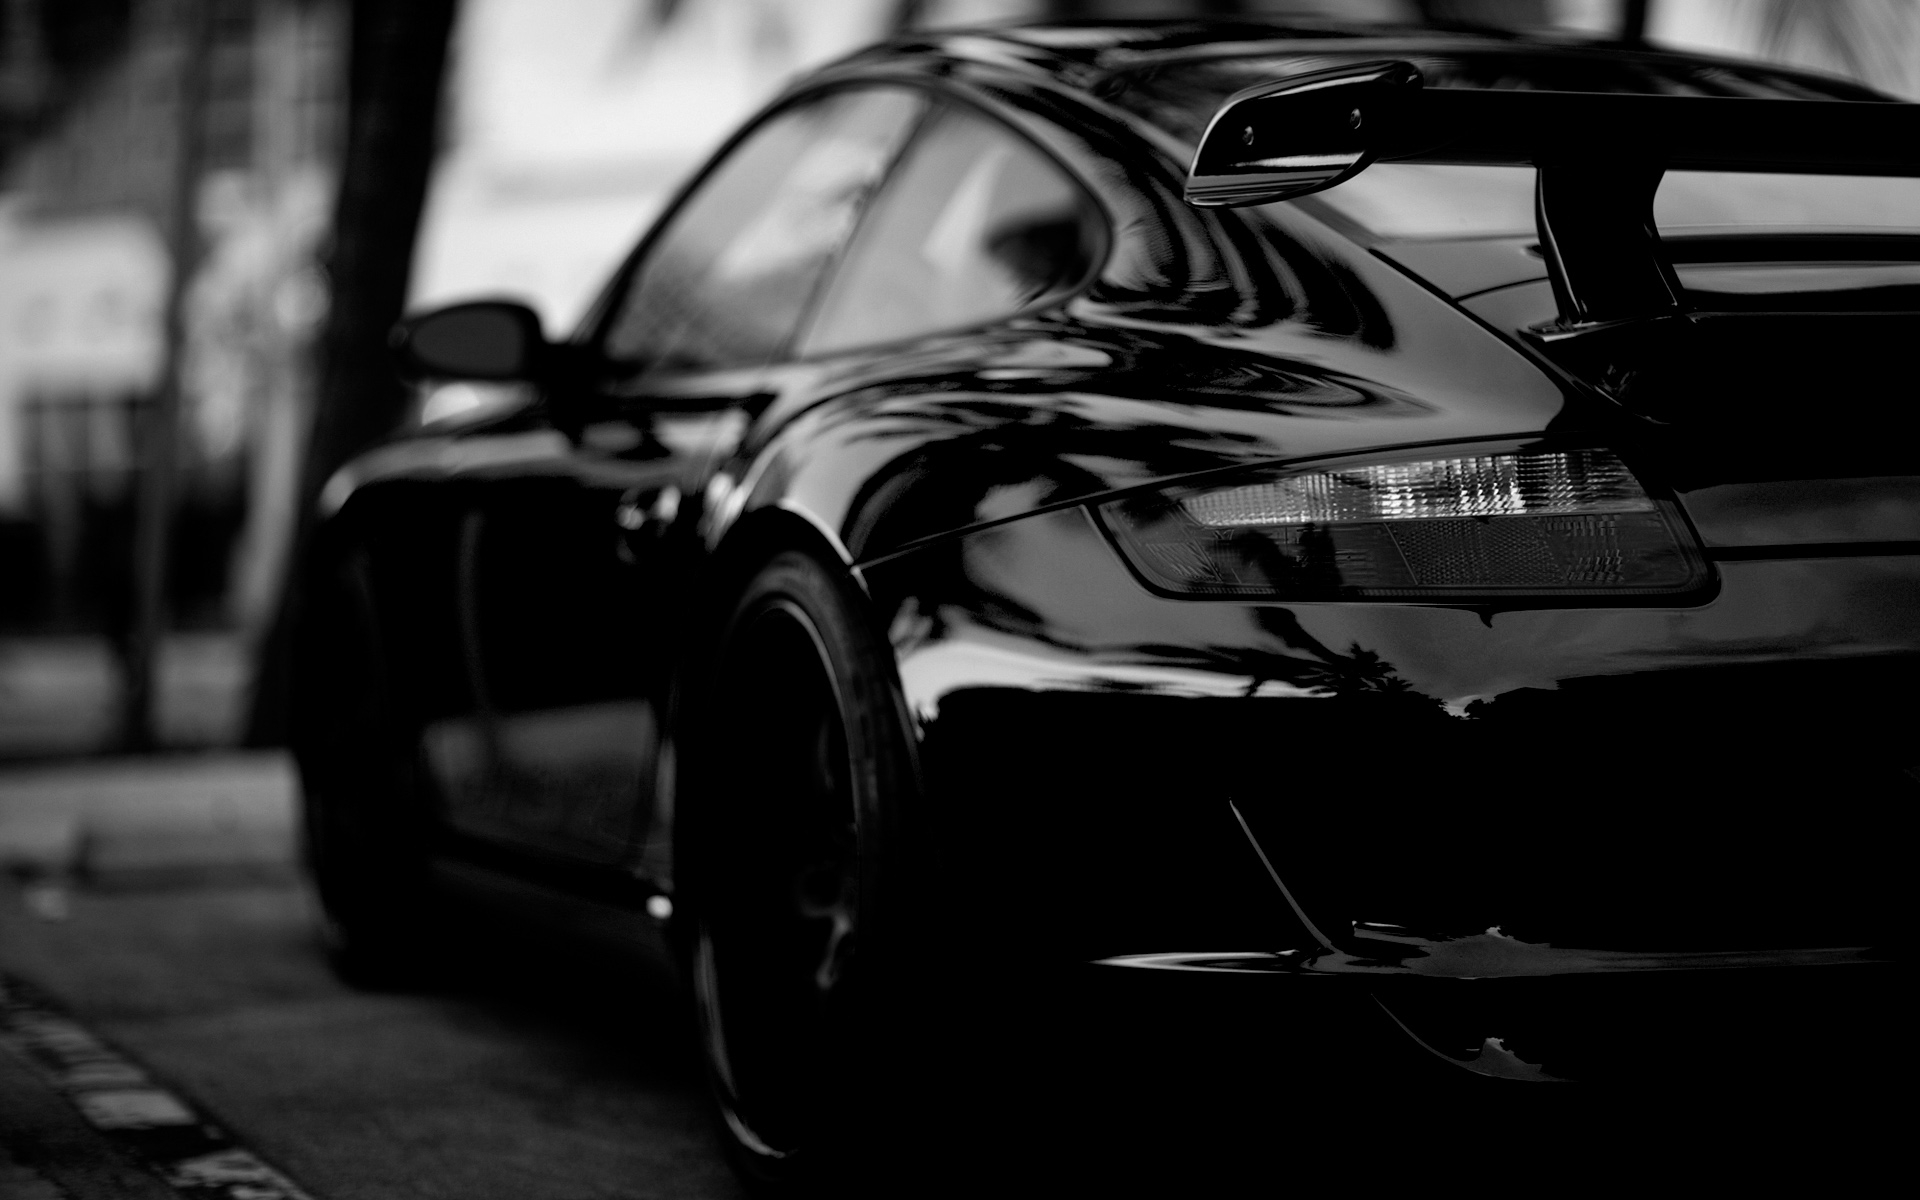 black porsche wallpaper | hd car wallpapers | id #2861